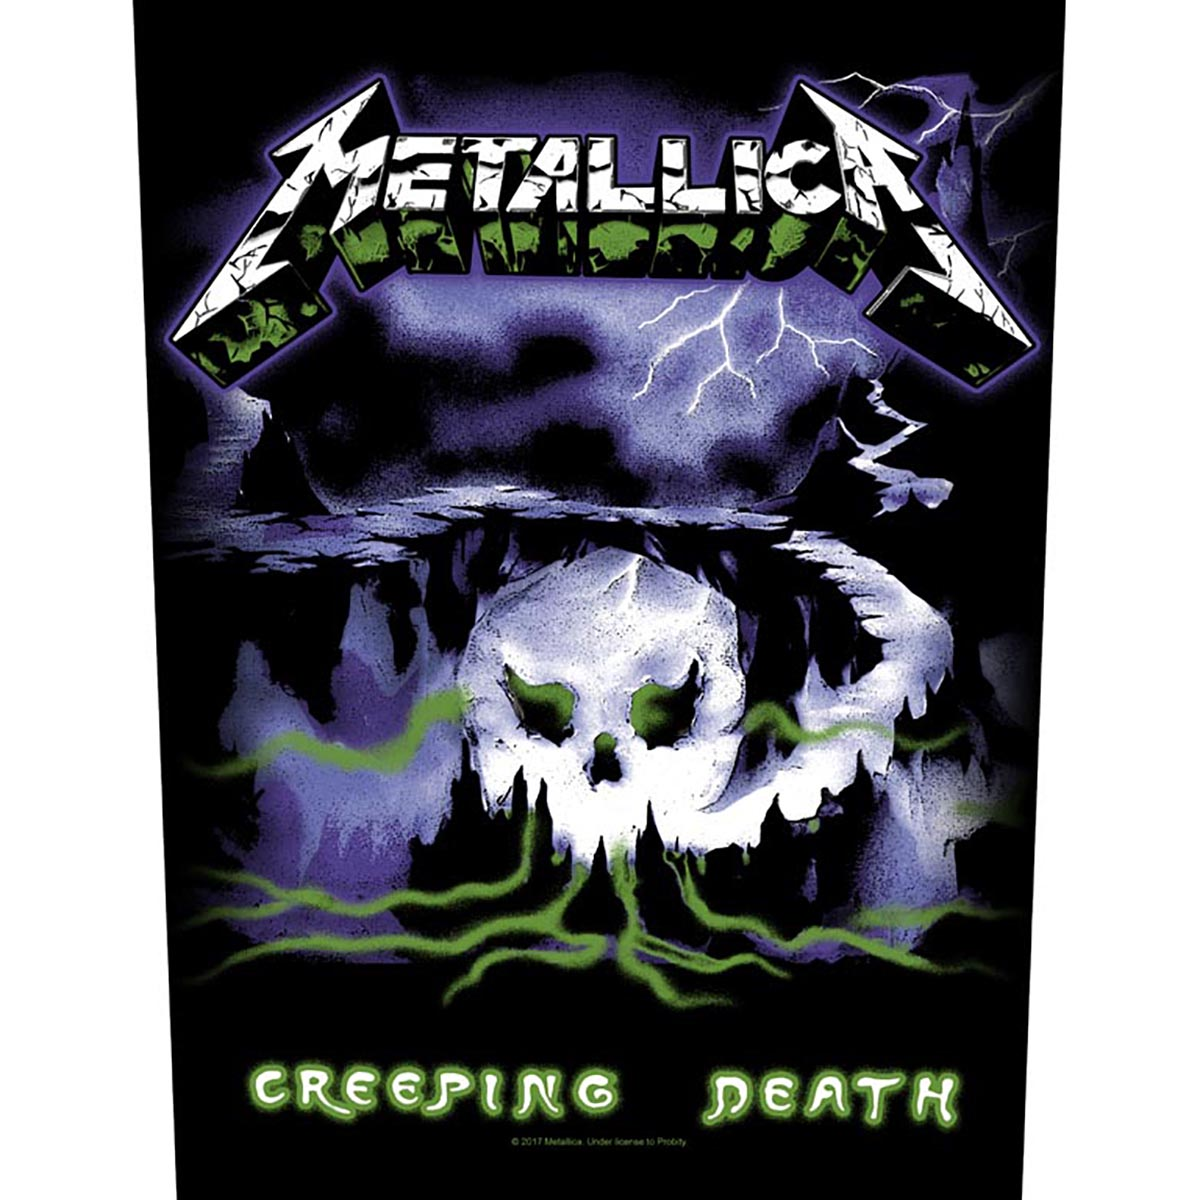 Creeping Death – Back Patch - Metallica